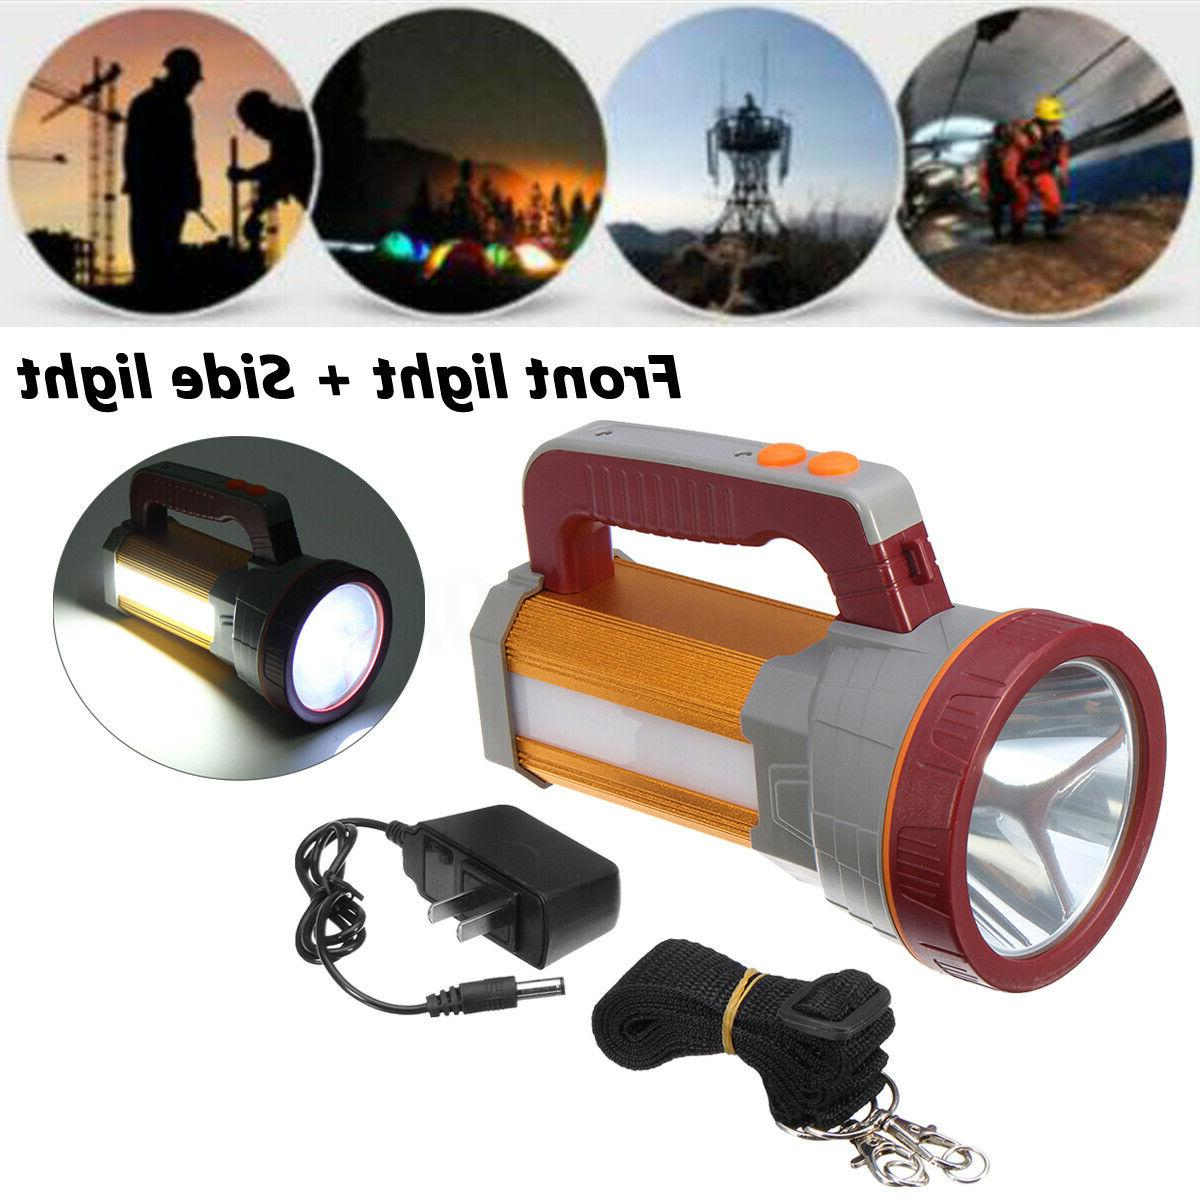 3000lm aluminum usb waterproof rechargeable searchlight camp